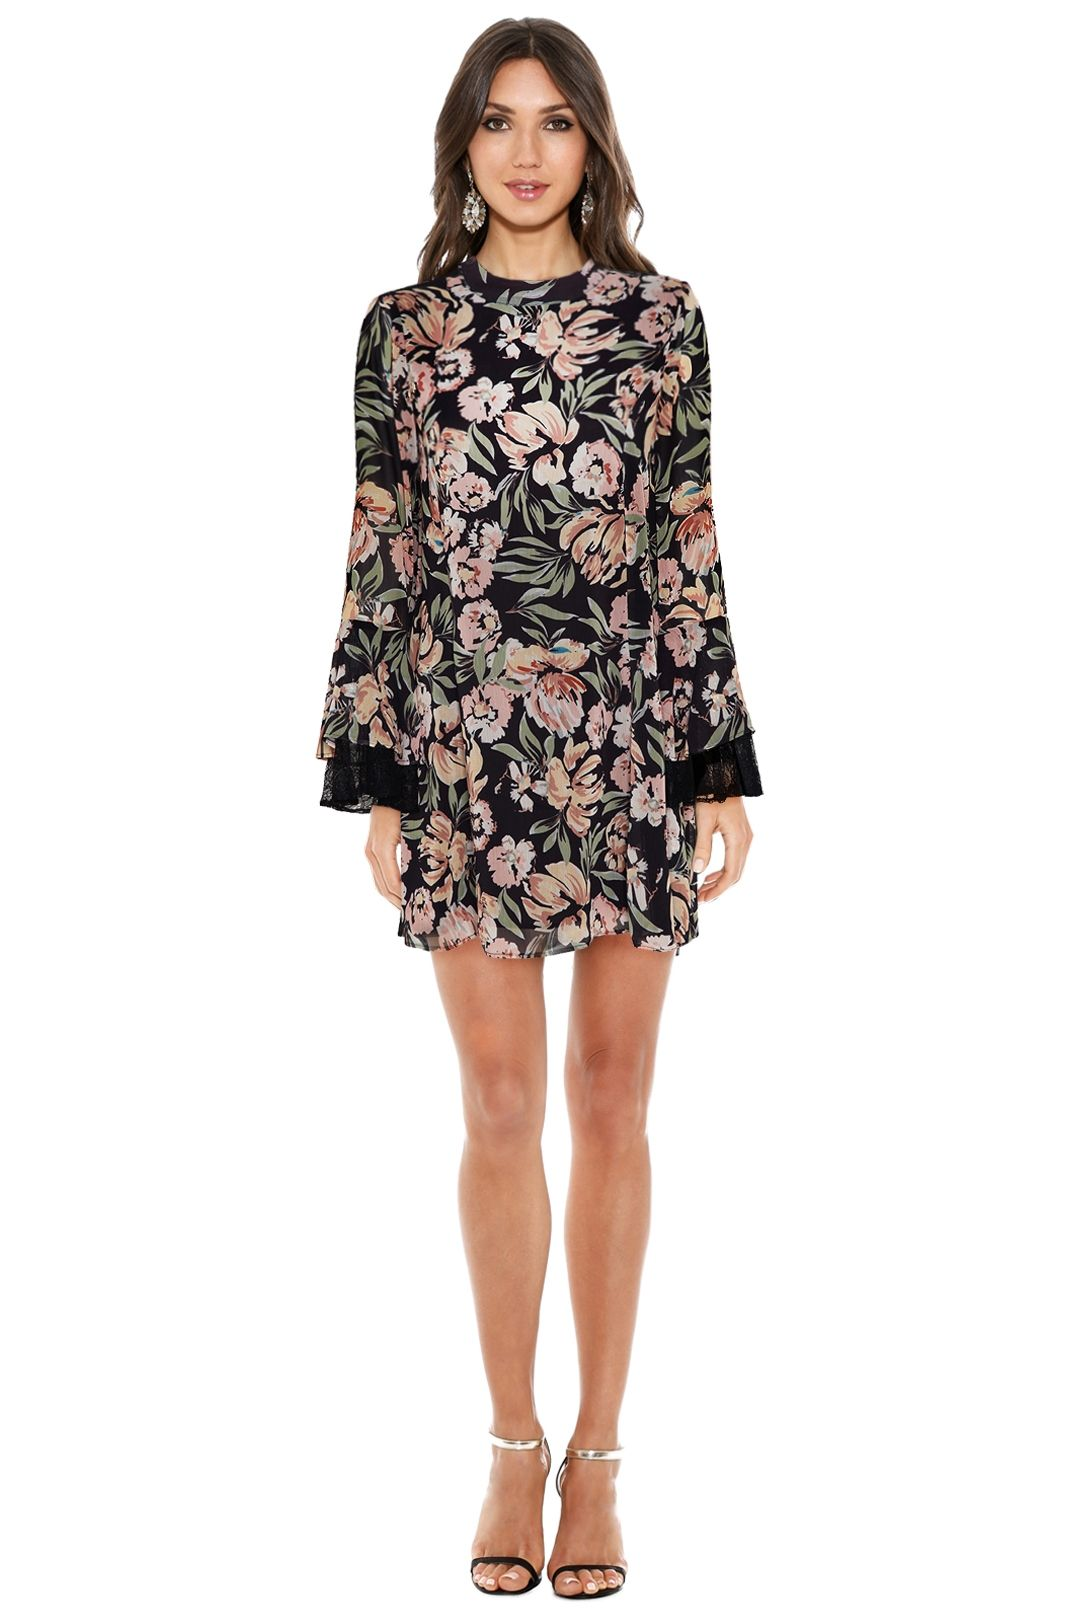 We Are Kindred - Jojo Frill Sleeve - Floral Black - Front